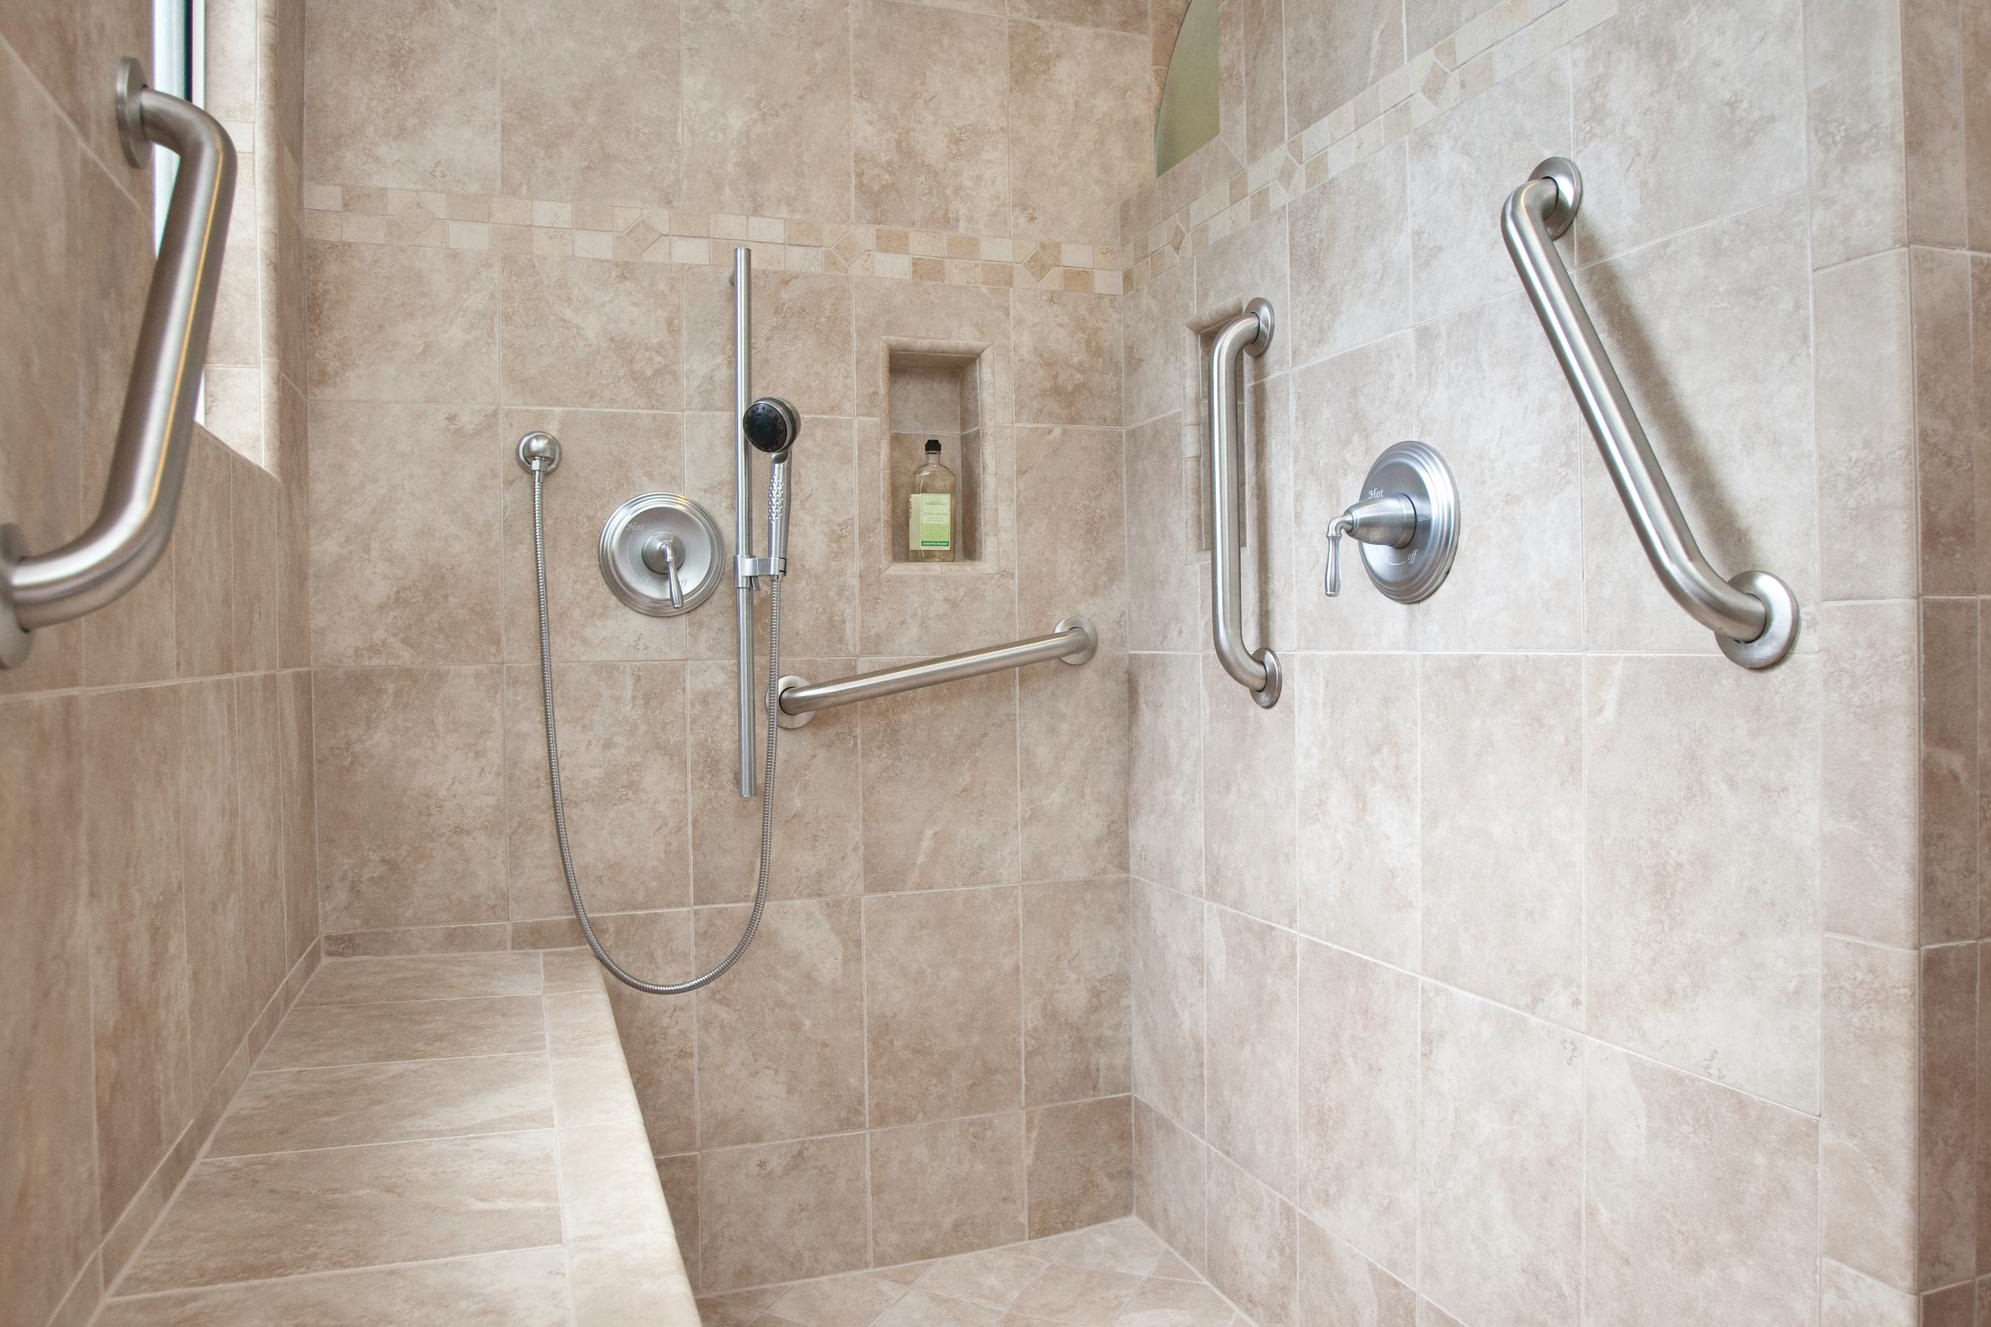 Handicap Bathroom Remodeling Costs all-access pass: showers | remodeling | bath, design, kitchen